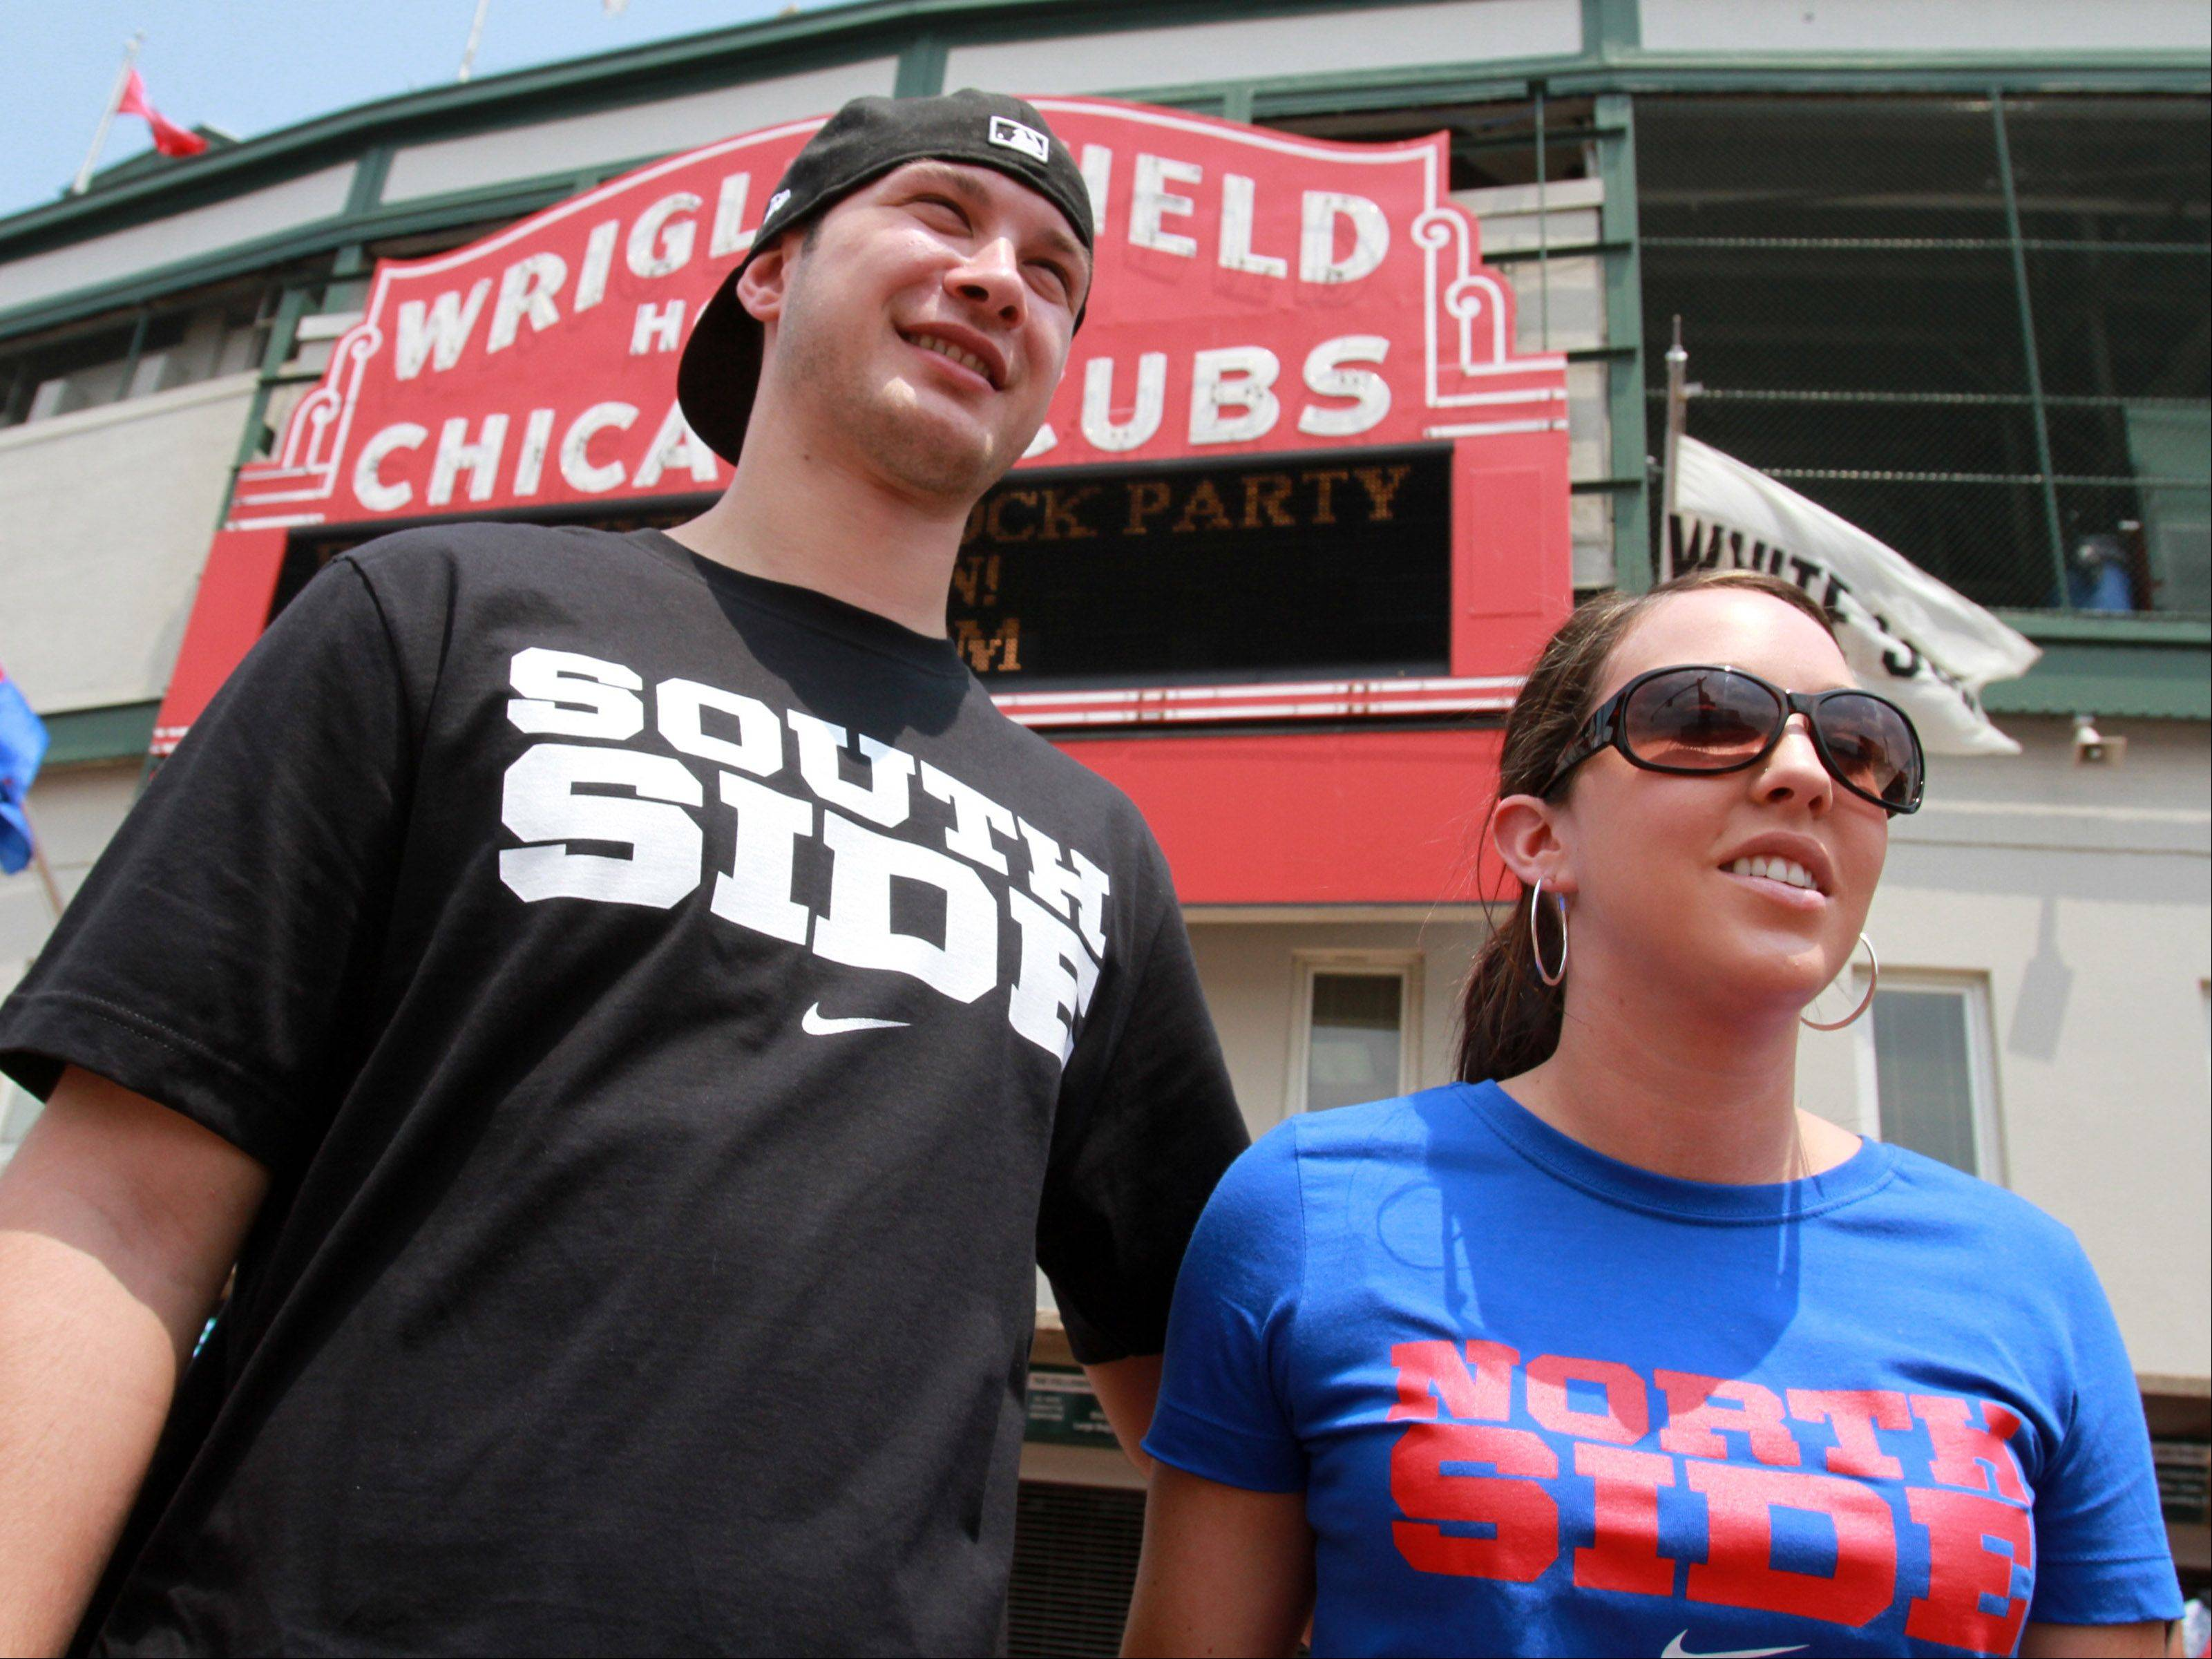 White Sox fan Joseph Halkinrude of Palatine and his wife Cubs fan Kim before the game at Wrigley Field on Saturday.